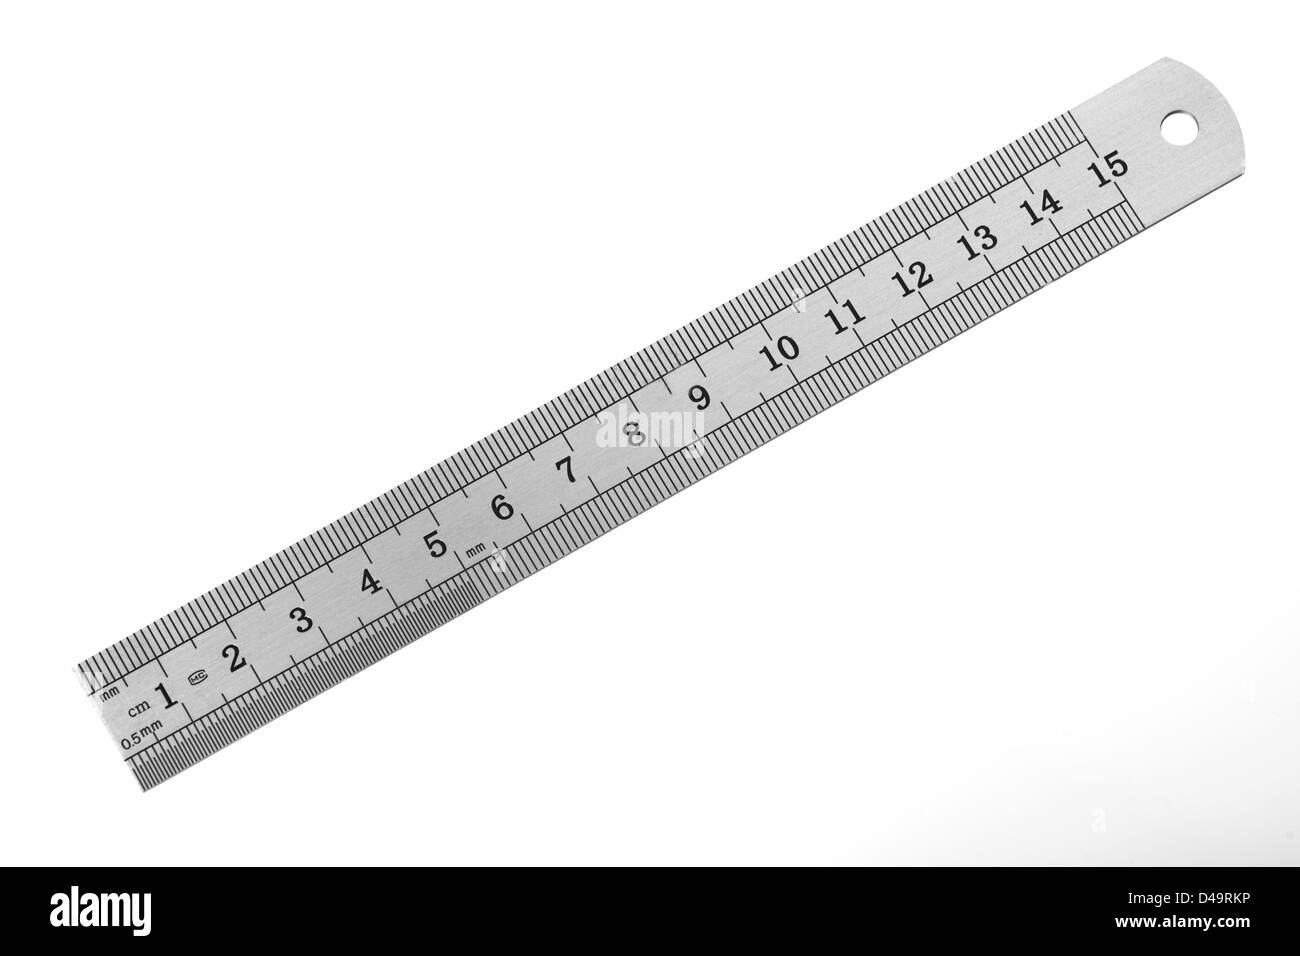 This is an image of a ruler, cut out over a white background ...